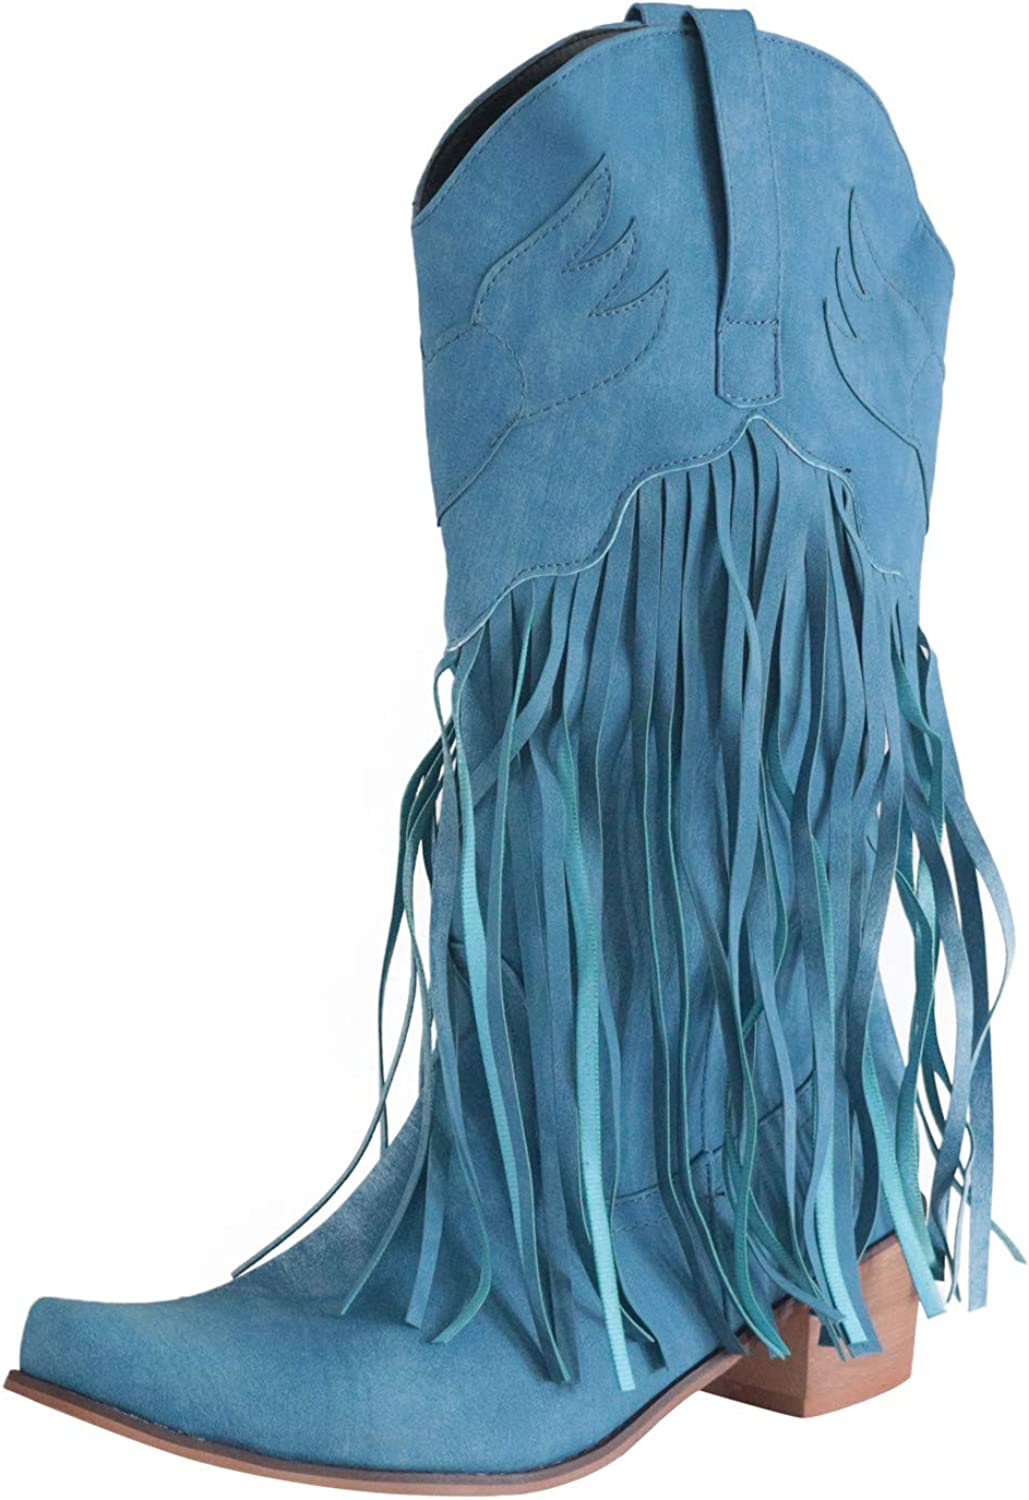 FEISI22 Women's Western Ankle Tassel Boots Cowboy 通販 激安◆ 超安い with